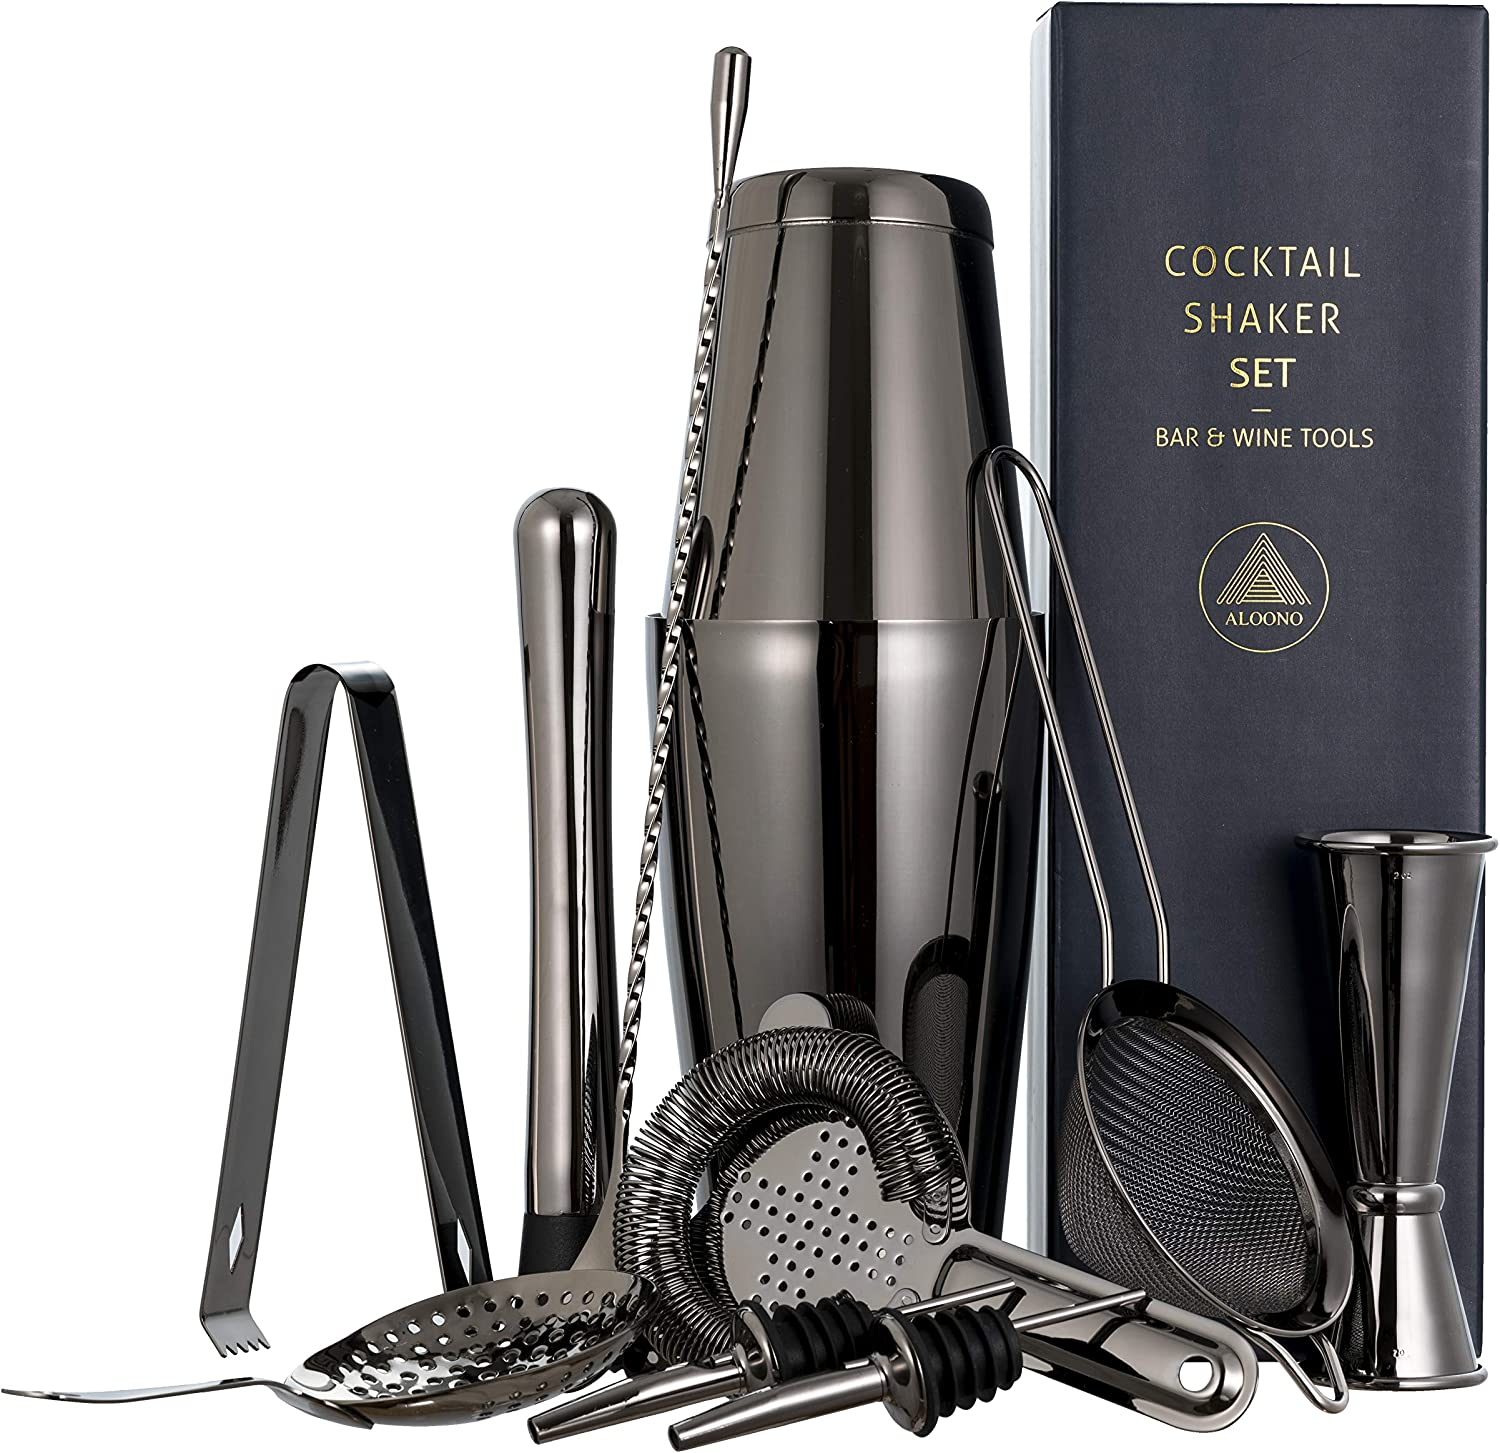 Best Bartender Kit Black Soing 11-Piece Black Bartender Kit,Perfect Home Cocktail Shaker Set for Drink Mixing,Stainless Steel Bar Tools with Stand,Velvet Carry Bag /& Cocktail Recipes Cards